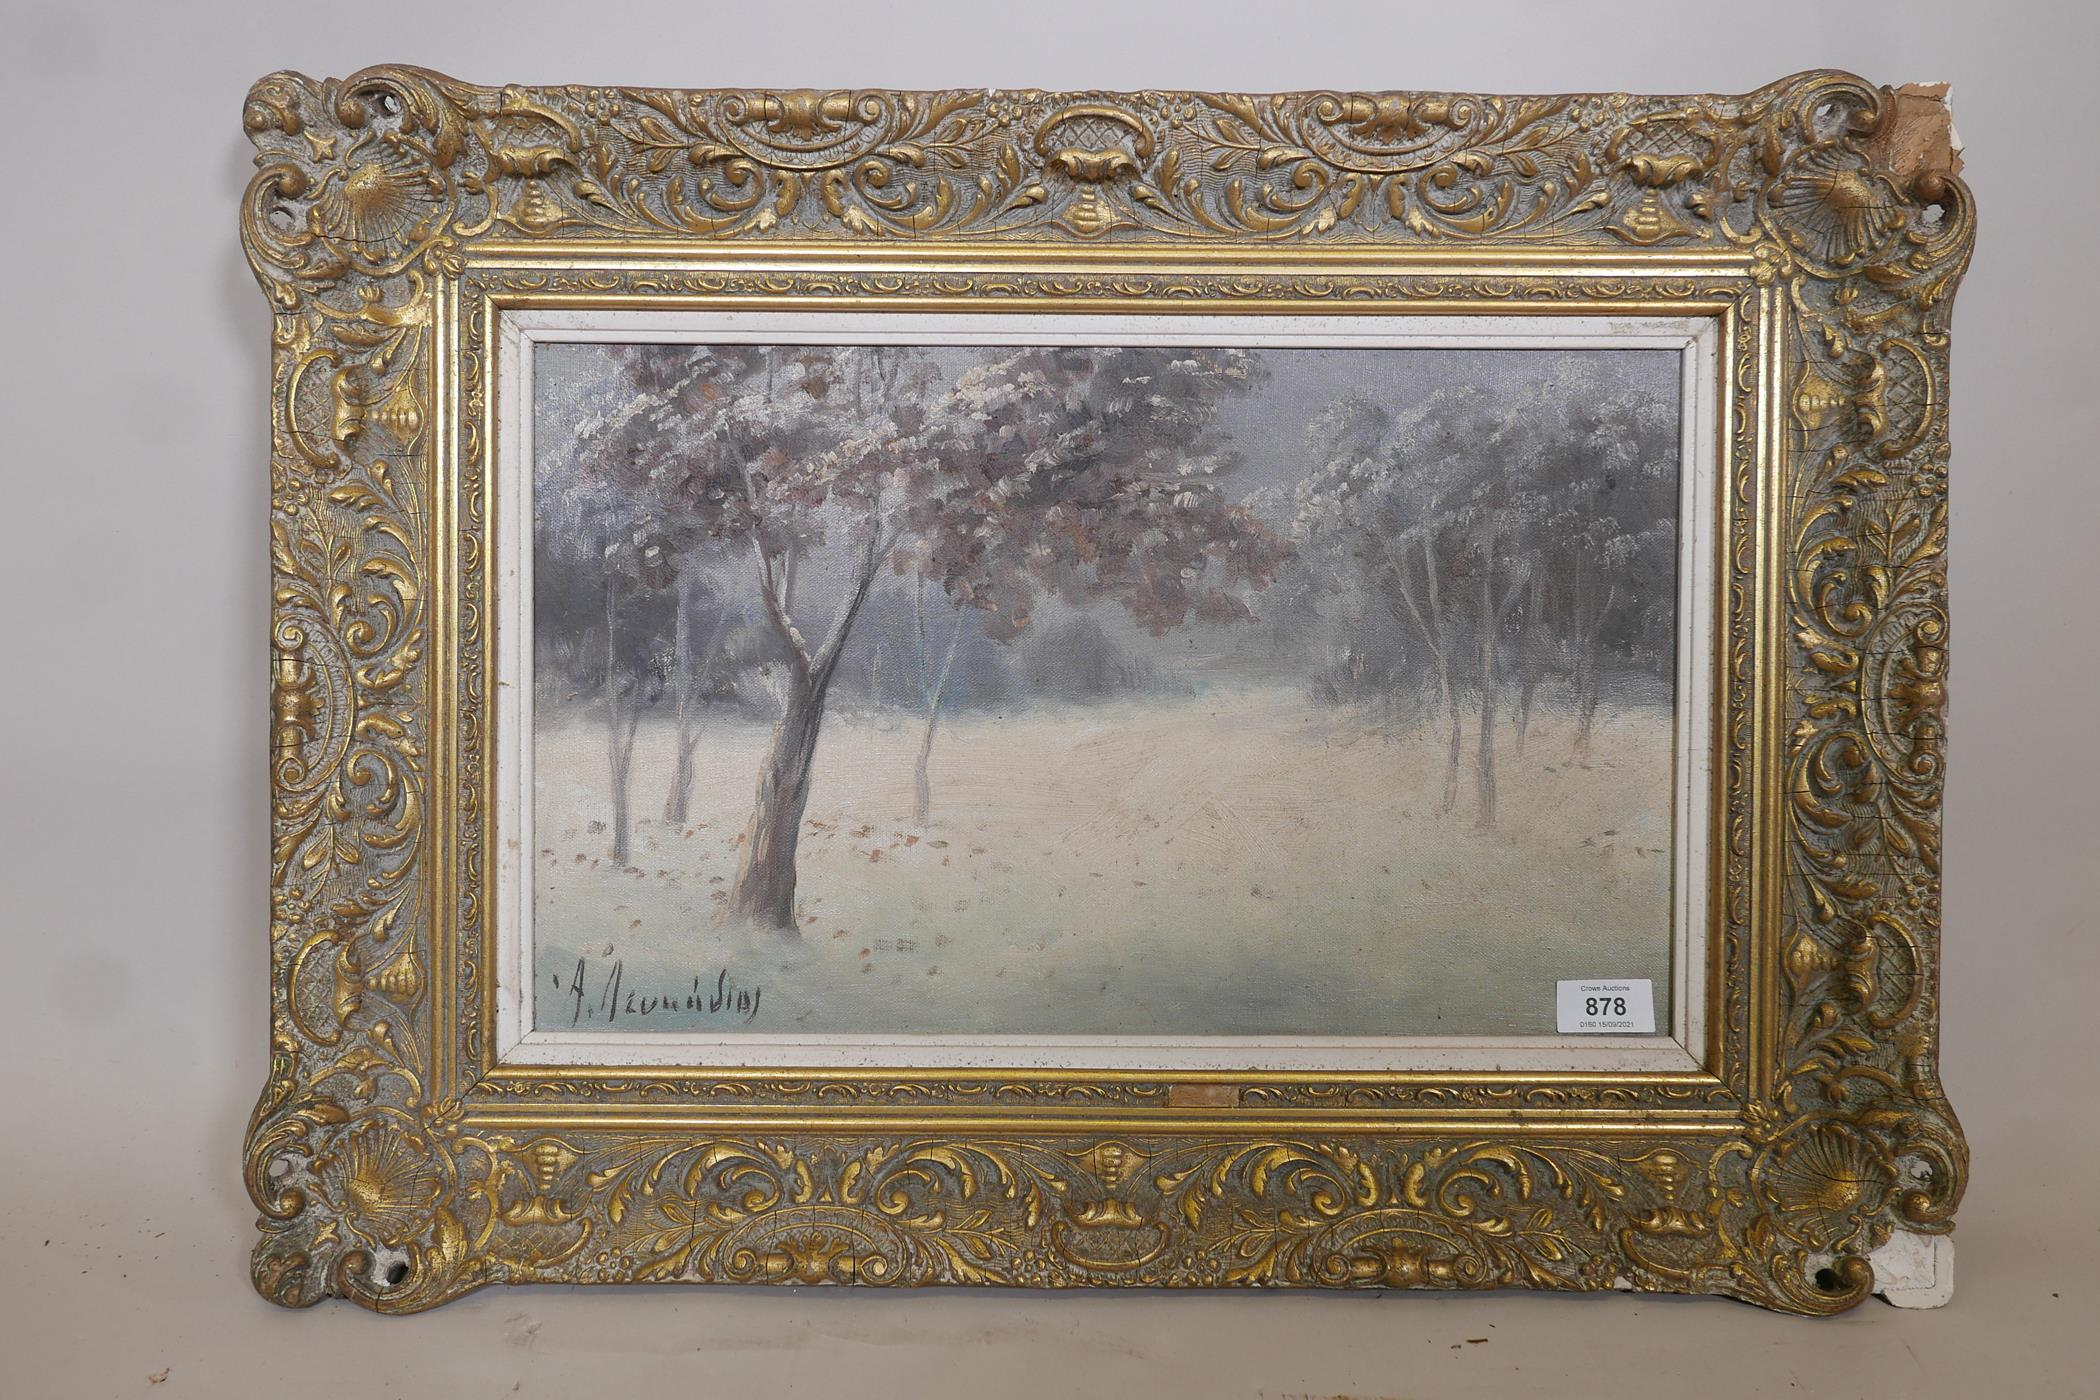 """Winter landscape, oil on board, signed A. Leukedios ?, Greek, early C20th, 18"""" x 11"""" - Image 2 of 5"""